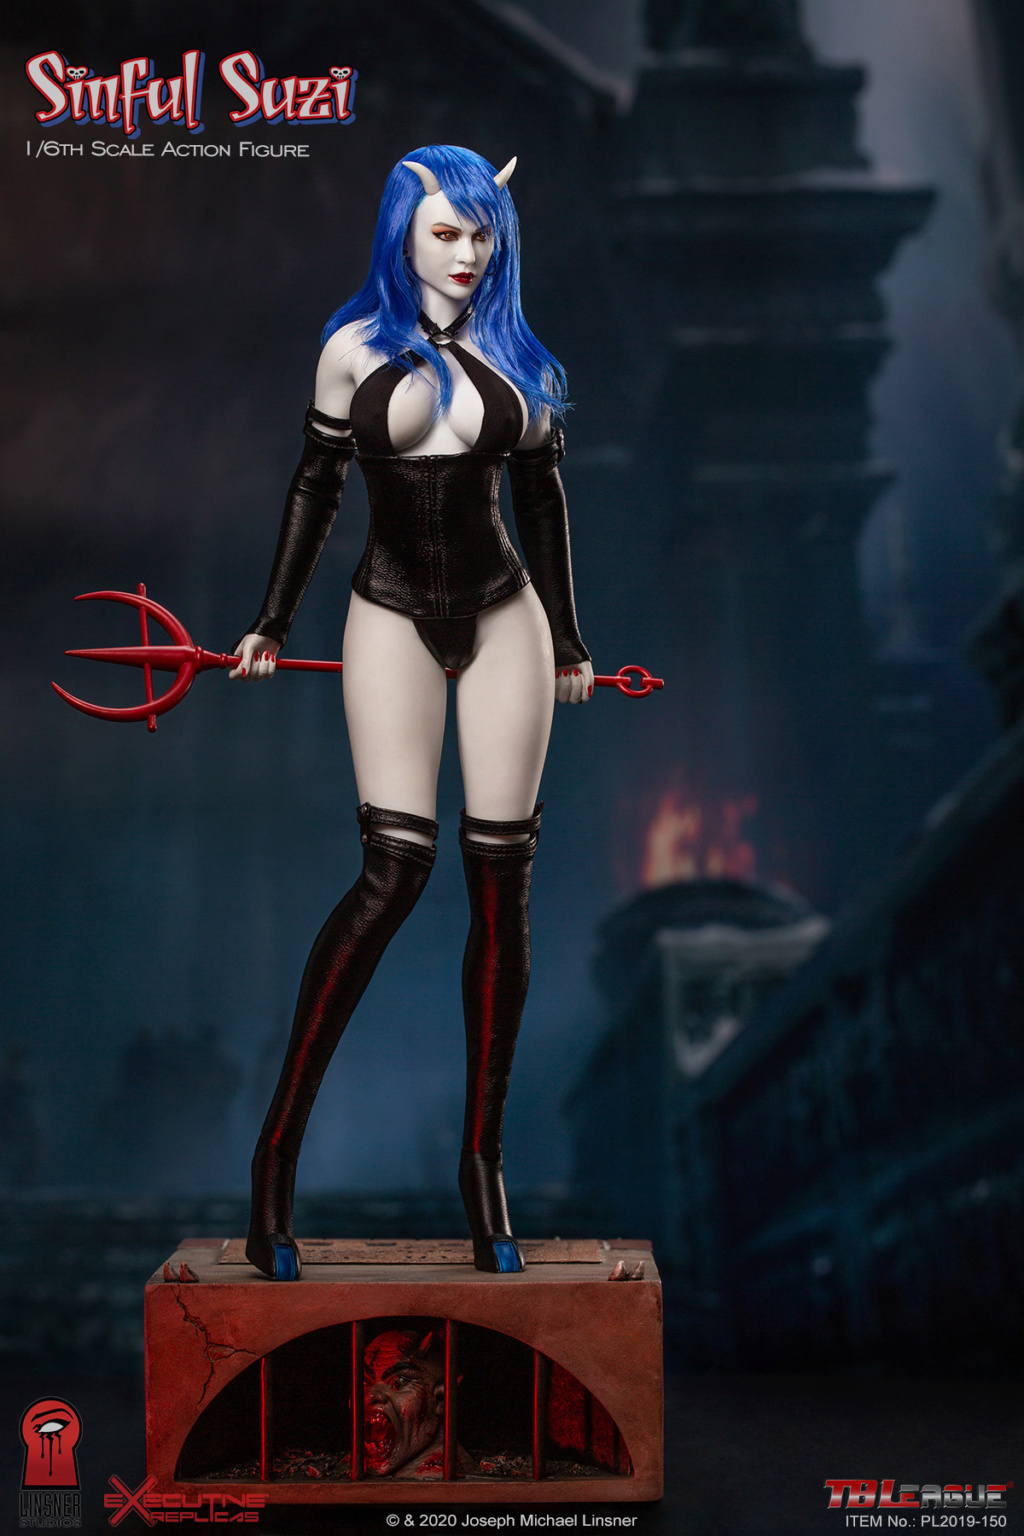 TBLeague - NEW PRODUCT: TBLeague Sinful Suzi 1/6 Scale Action Figure (PL2019-150) 18433610